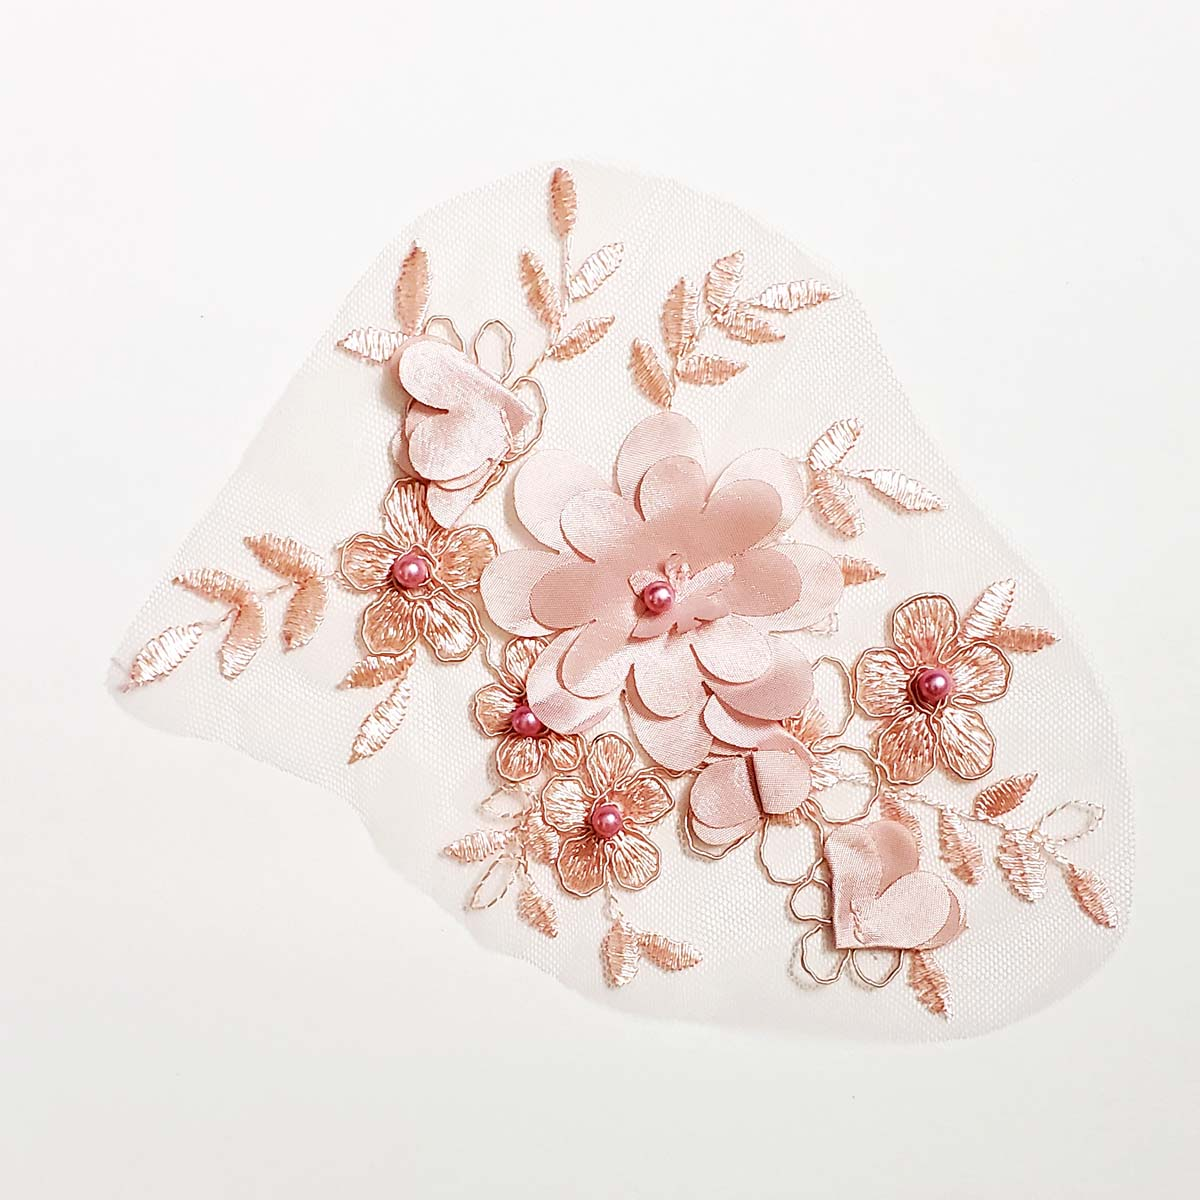 3D Flower Blush Pink Applique with Pearls1